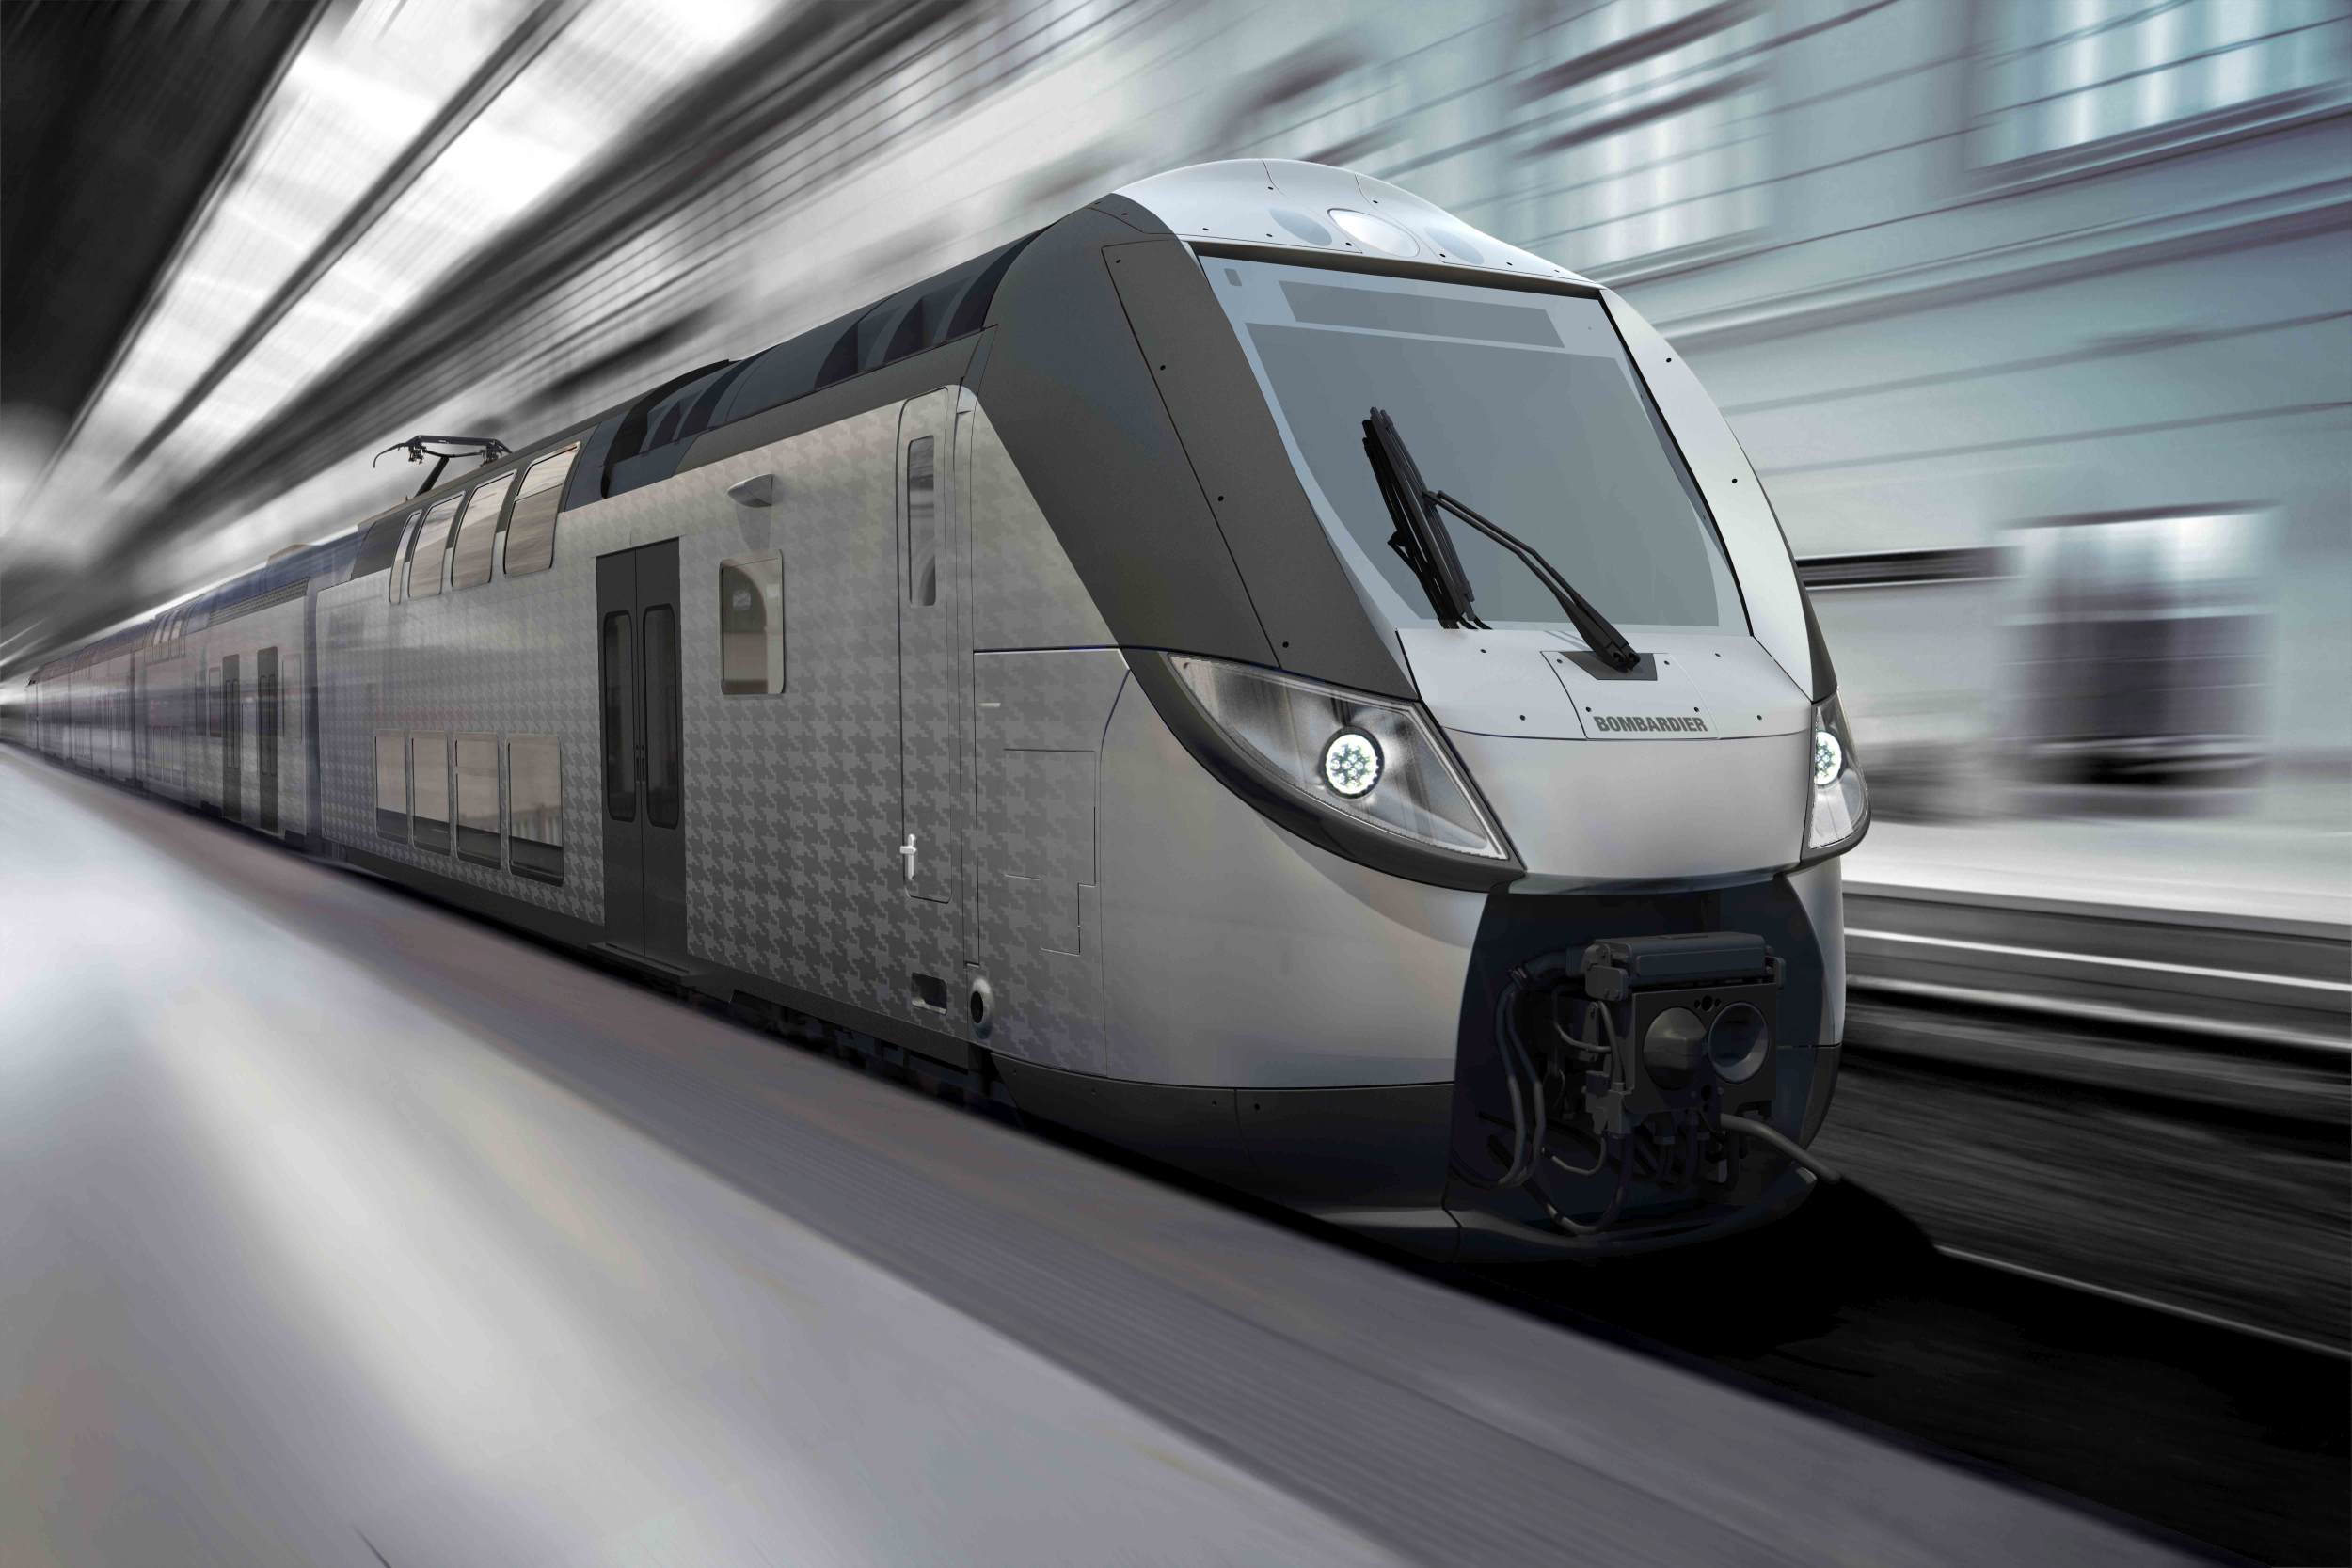 Normandy is the first Region to choose the new version of BOMBARDIER OMNEO trains for its intercity services